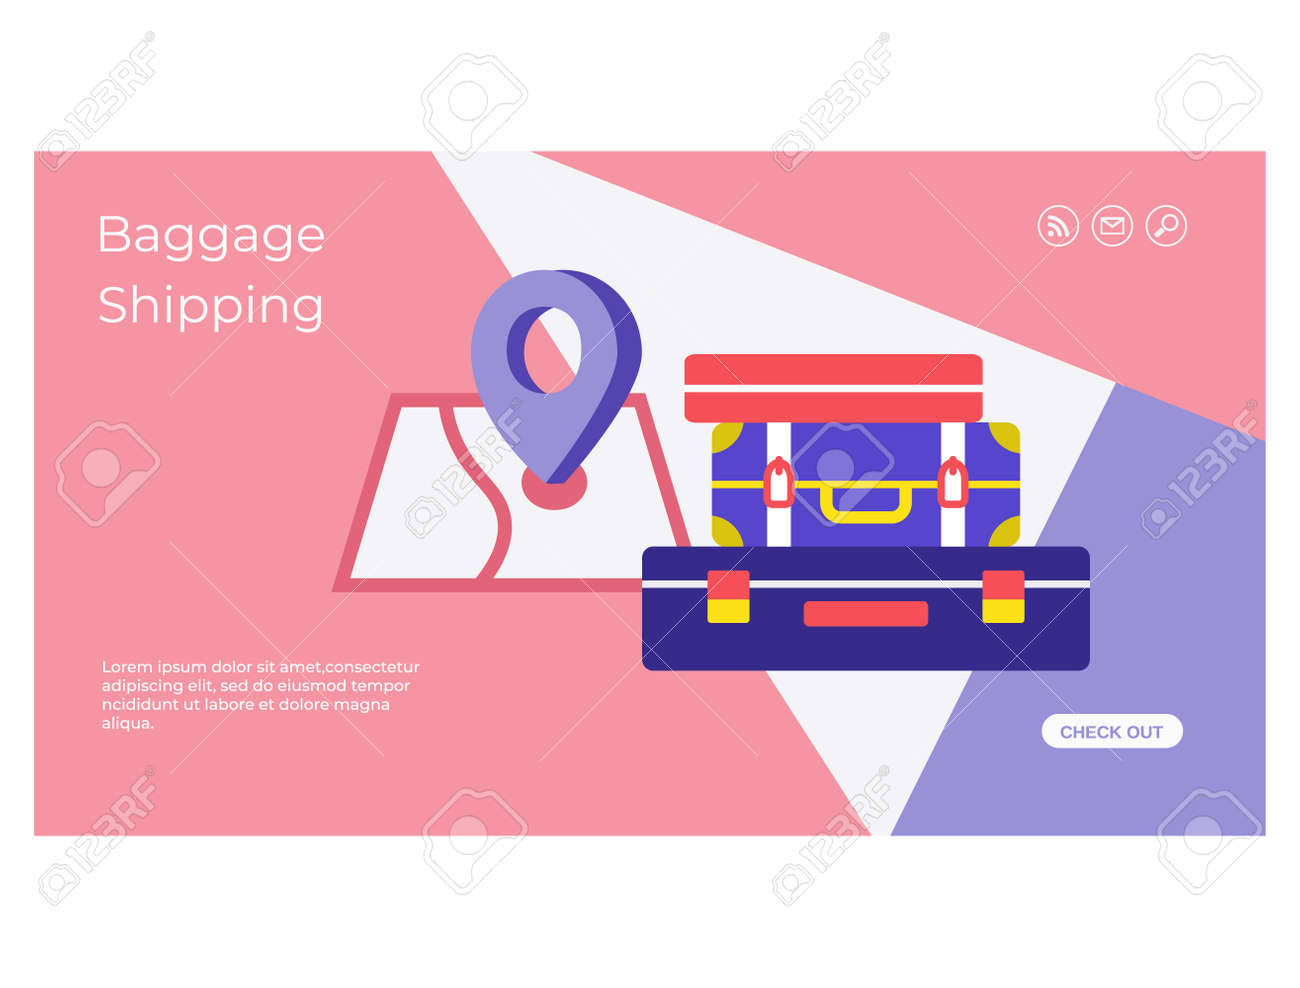 Luggage delivery service mobile app page design - 168346697